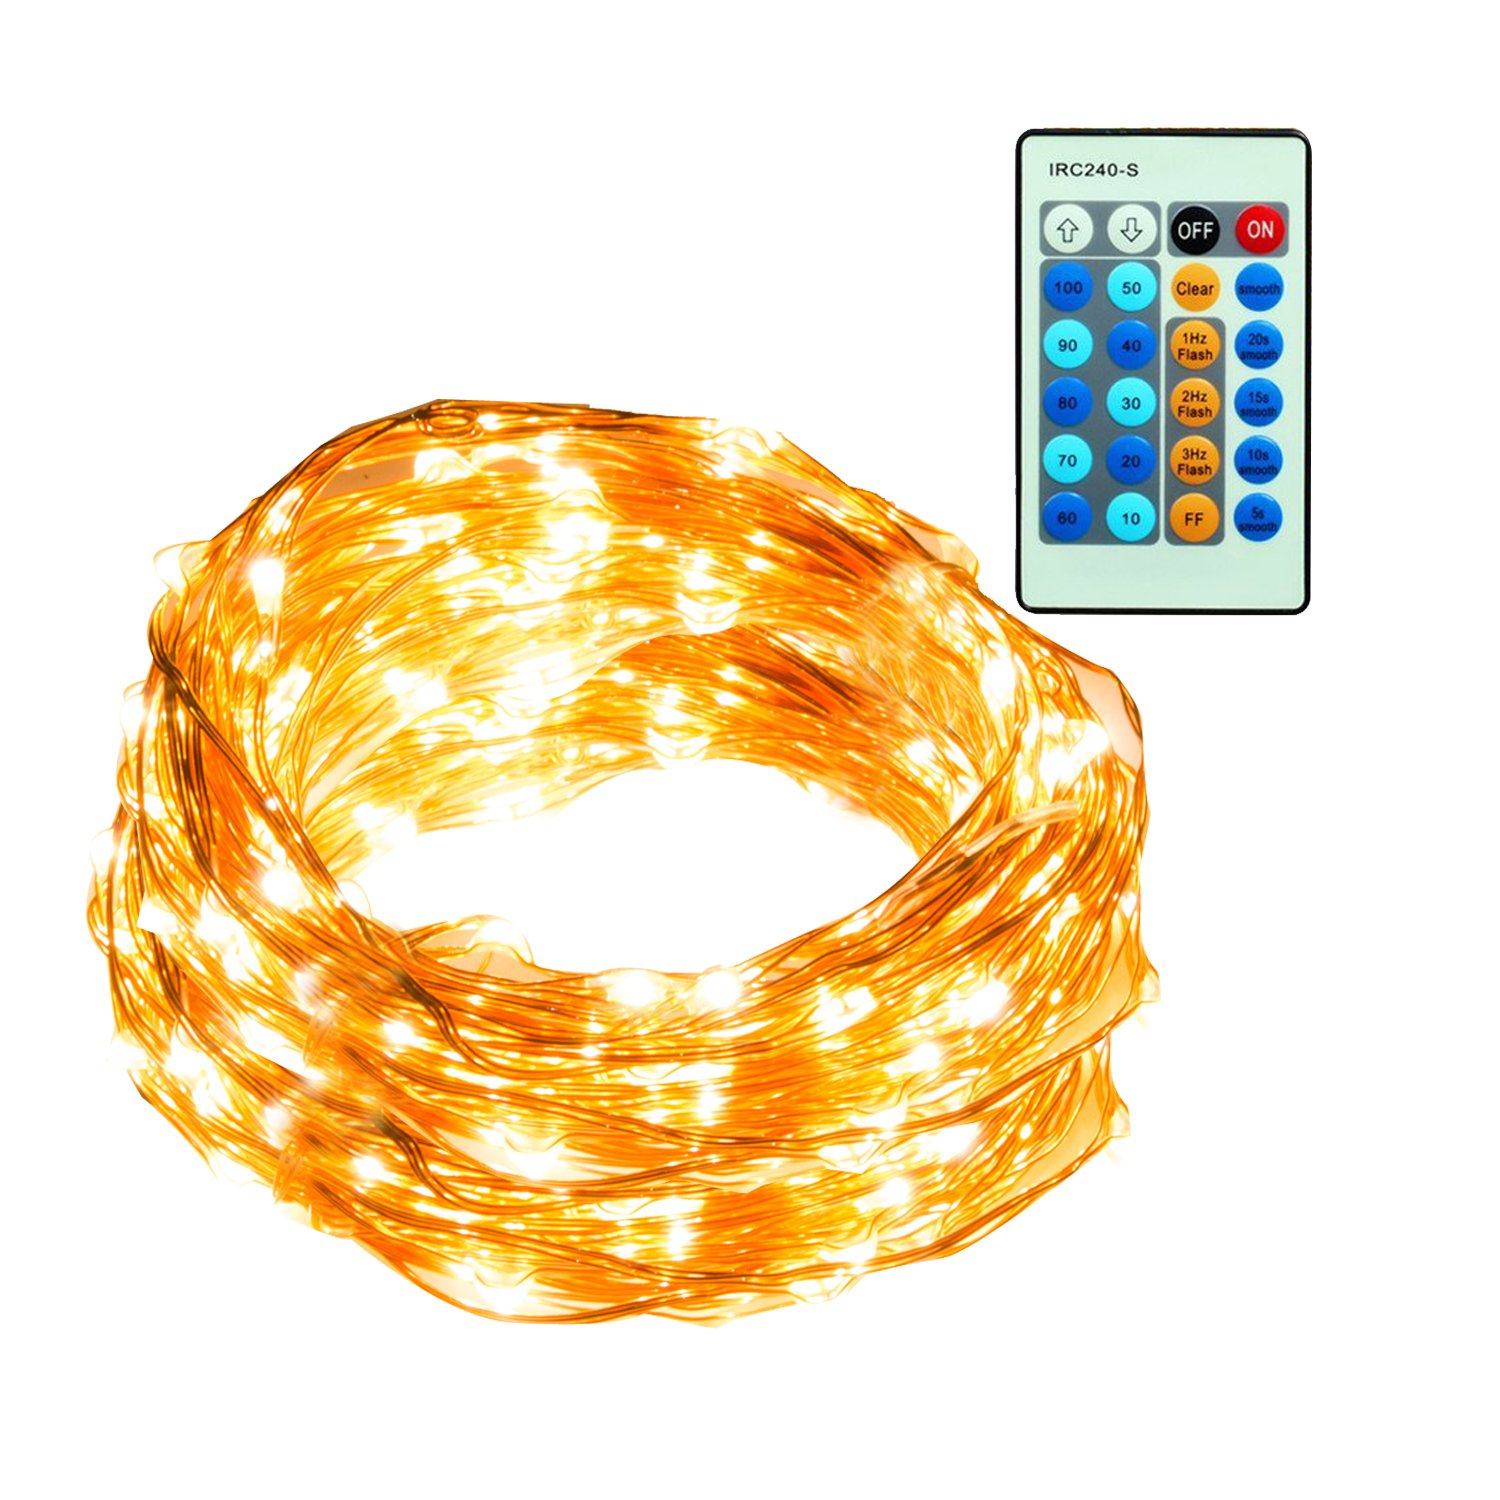 40Ft 120 LED Fairy Starry Christmas Copper Wire String Dimmable with Remote Control. Waterproof Decorative Lights for Bedroom, Patio, Dining room, Garden, Gate, Yard, Parties, Wedding,Bed Room. by Environmental Garden